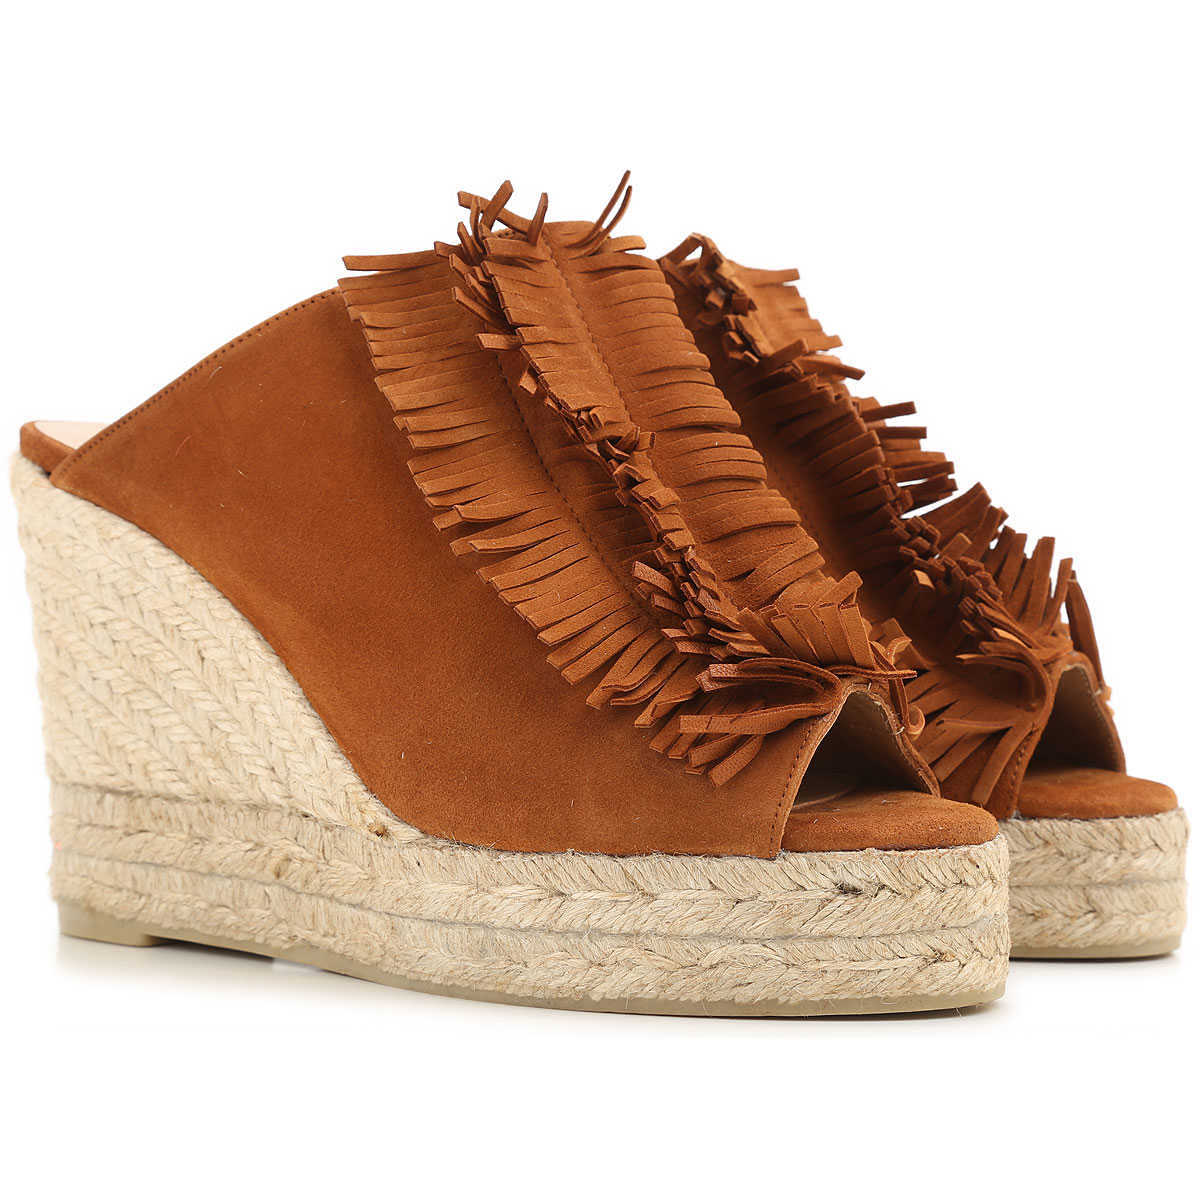 Castaner Wedges for Women On Sale in Outlet Rust DK - GOOFASH - Womens HOUSE SHOES